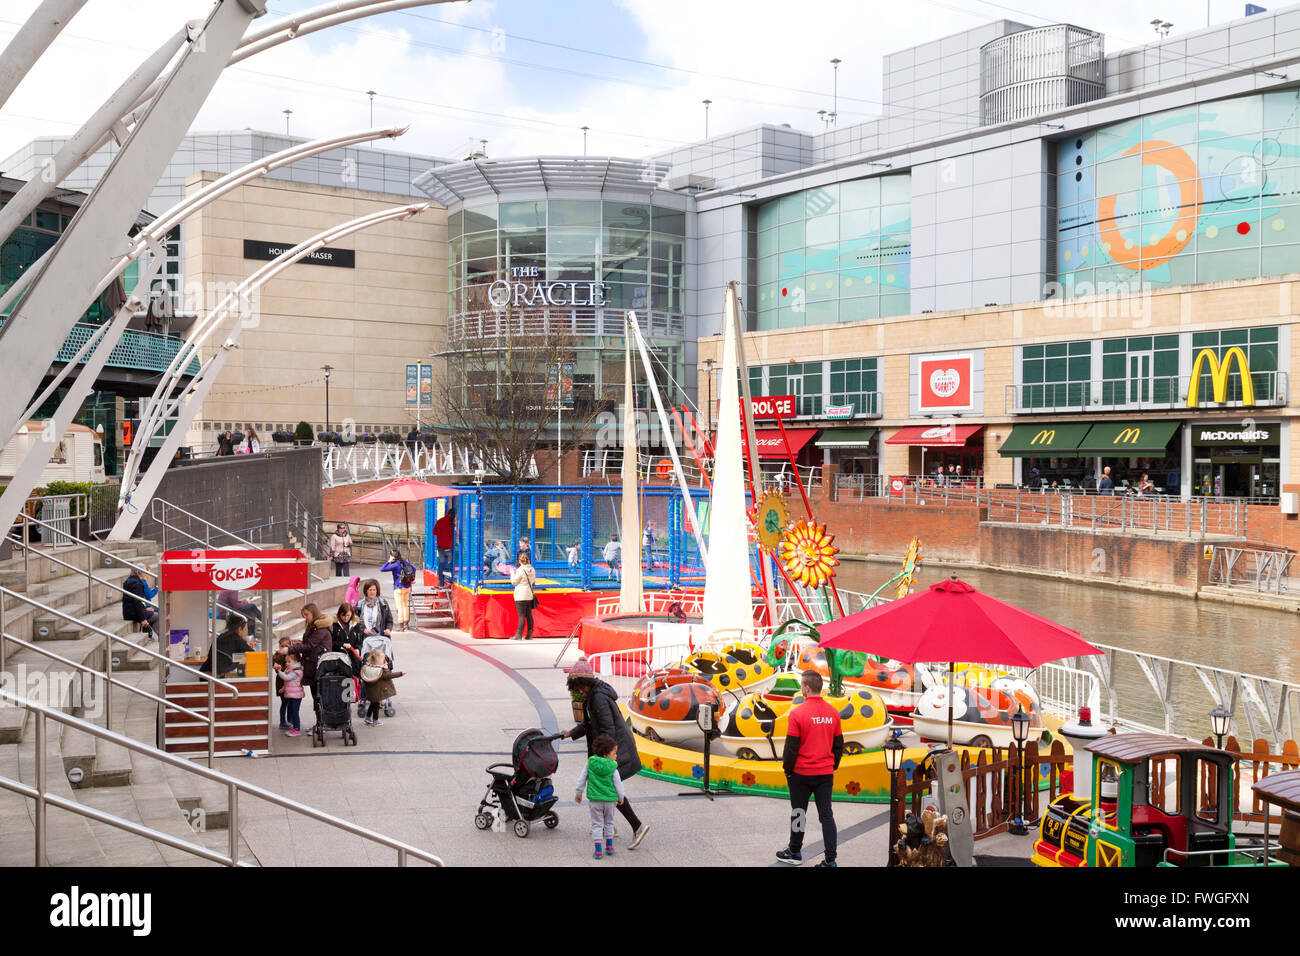 The Oracle Shopping Centre, Reading, Berkshire UK - Stock Image